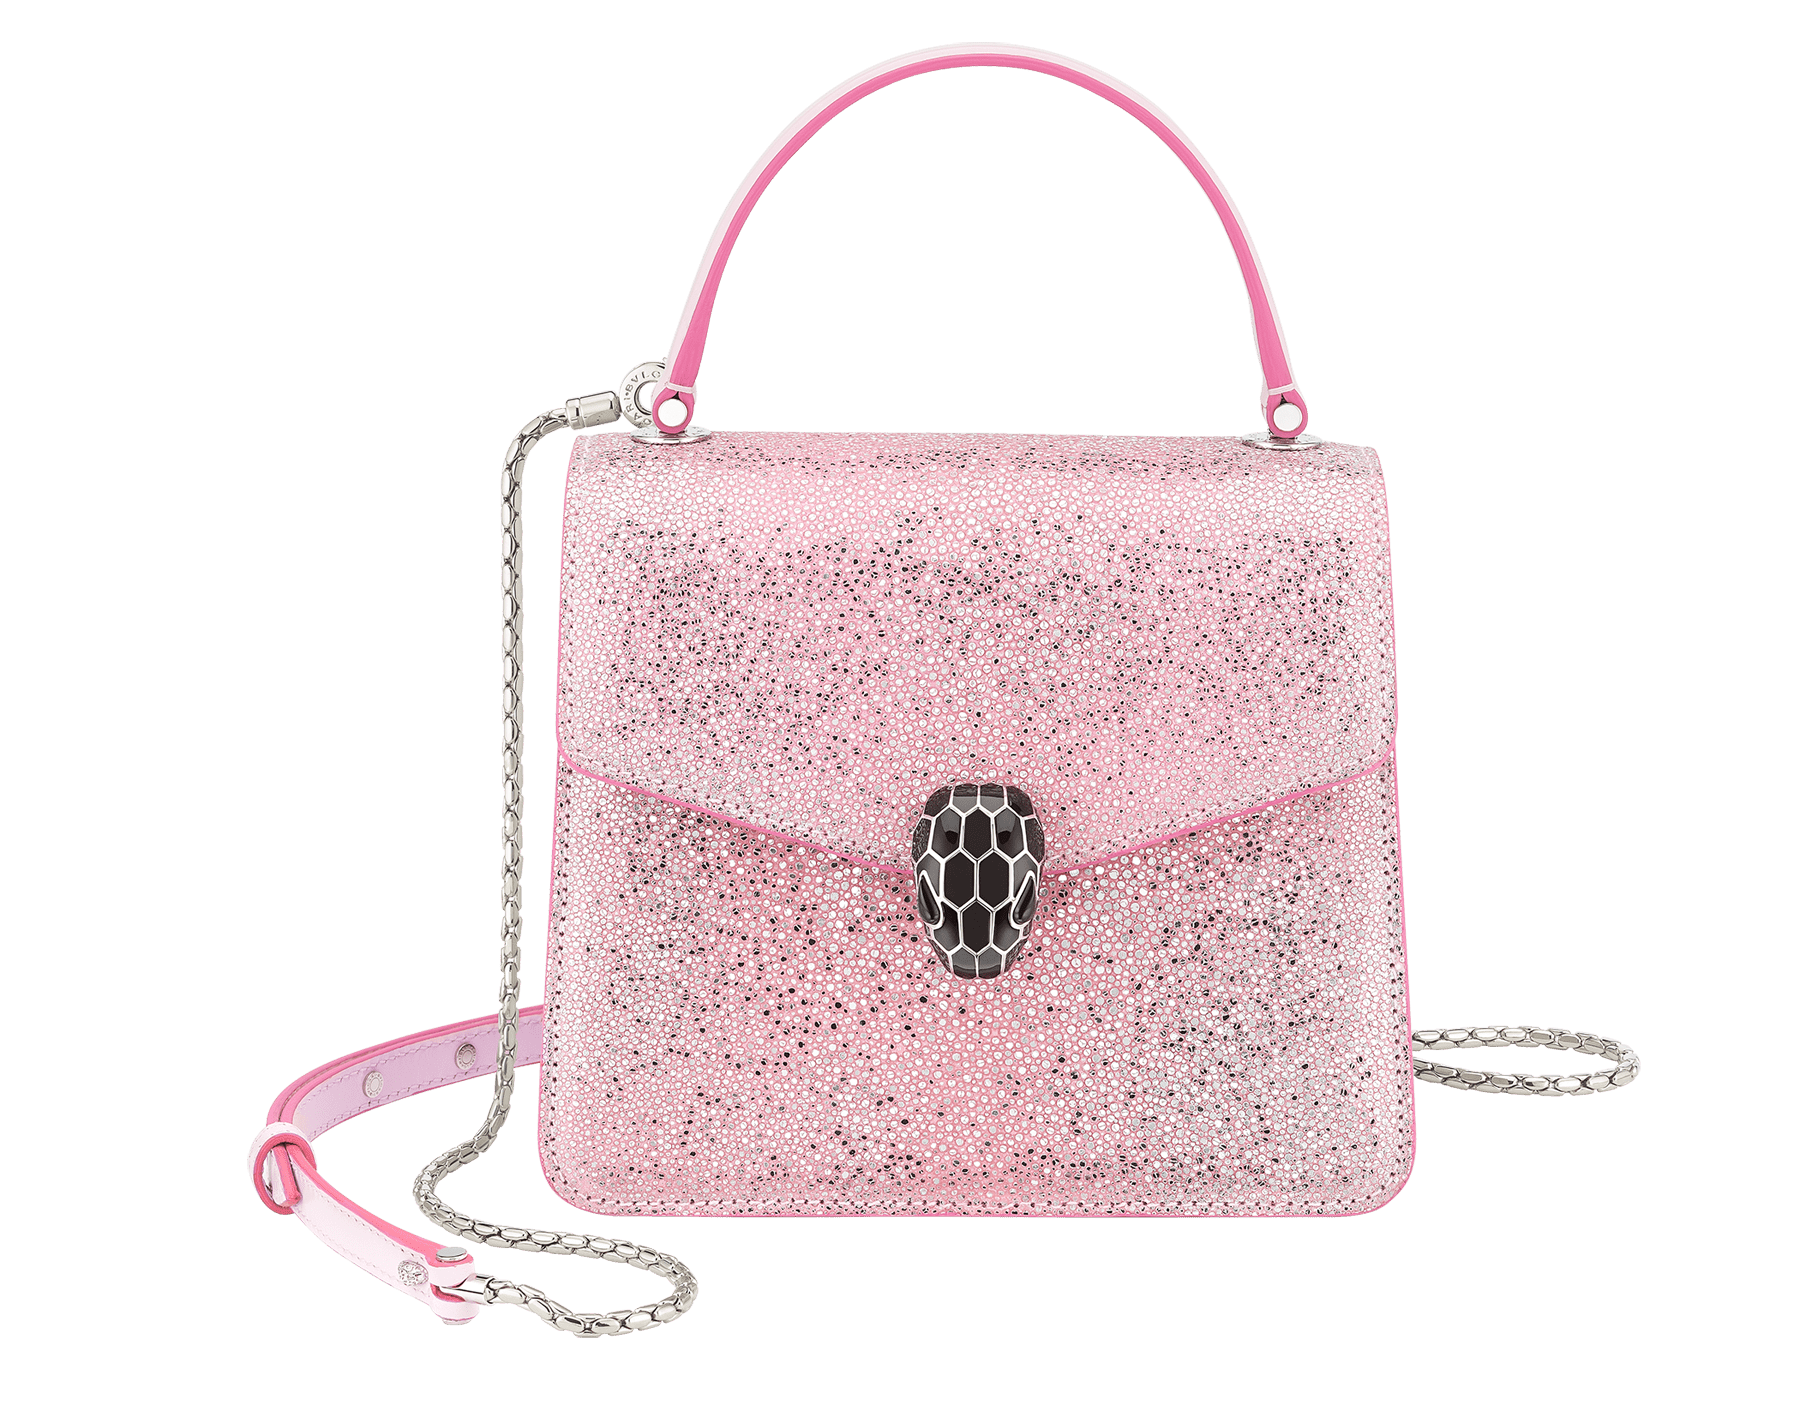 """Serpenti Forever"" crossbody bag in rosa di francia crystal galuchat body and rosa di francia calf leather sides. Iconic snake head closure in palladium-plated brass enriched with black enamel and black onyx eyes. 289459 image 1"